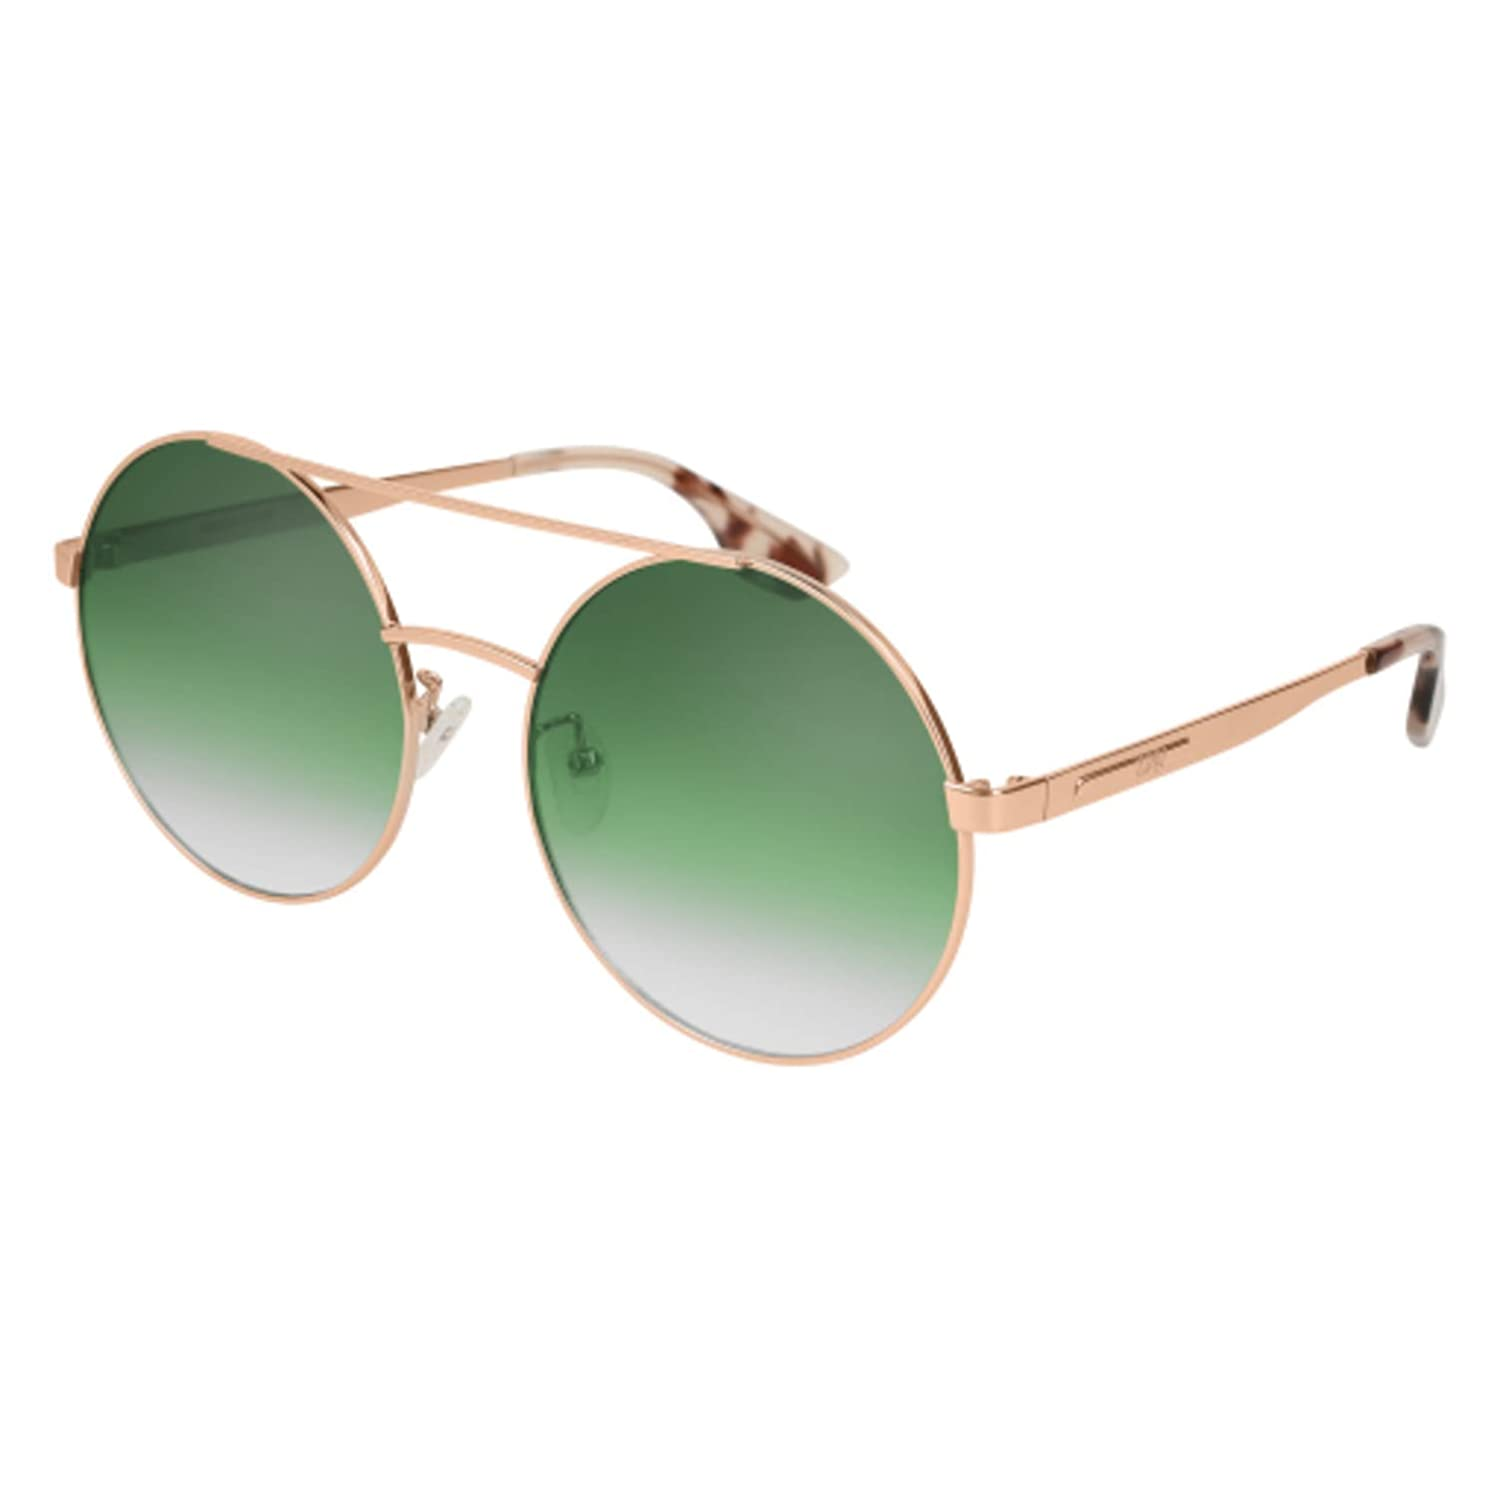 93bc7d35b4 Sunglasses Alexander McQueen MQ 0092 S- 005 GOLD SILVER at Amazon Men s  Clothing store